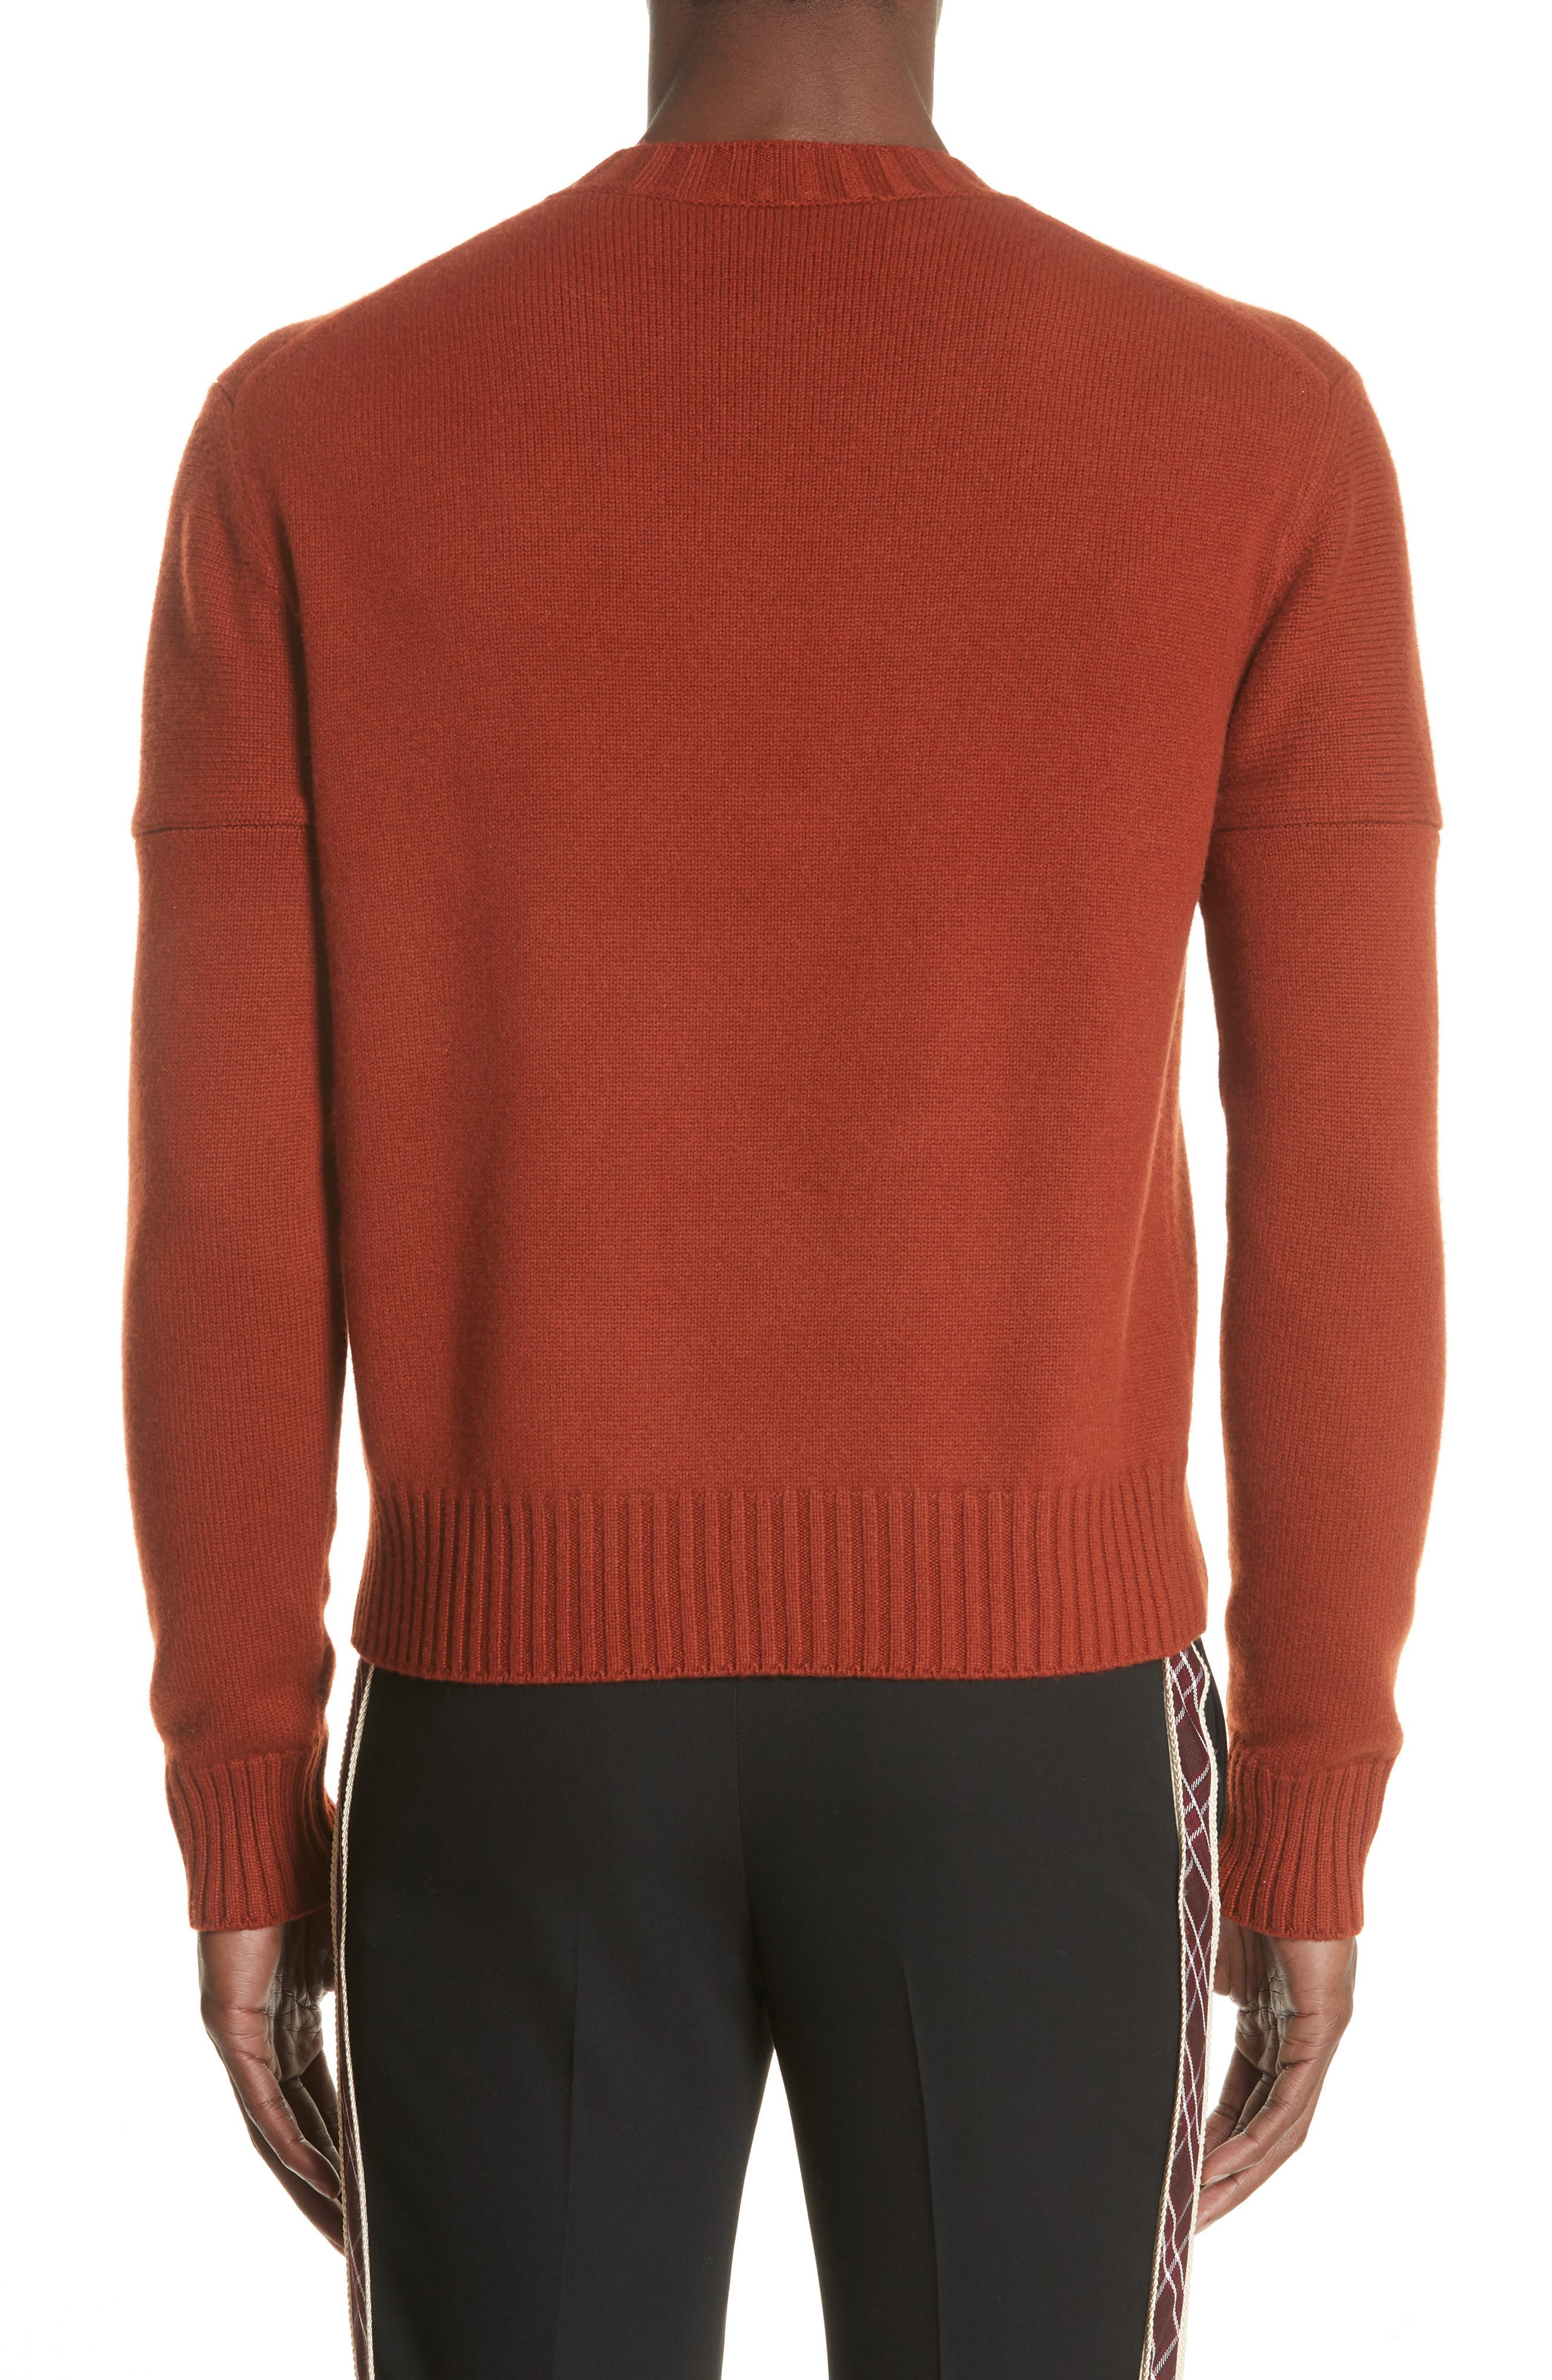 CALVIN KLEIN 205W39NYC,                             Cashmere Sweater,                             Alternate thumbnail 2, color,                             605